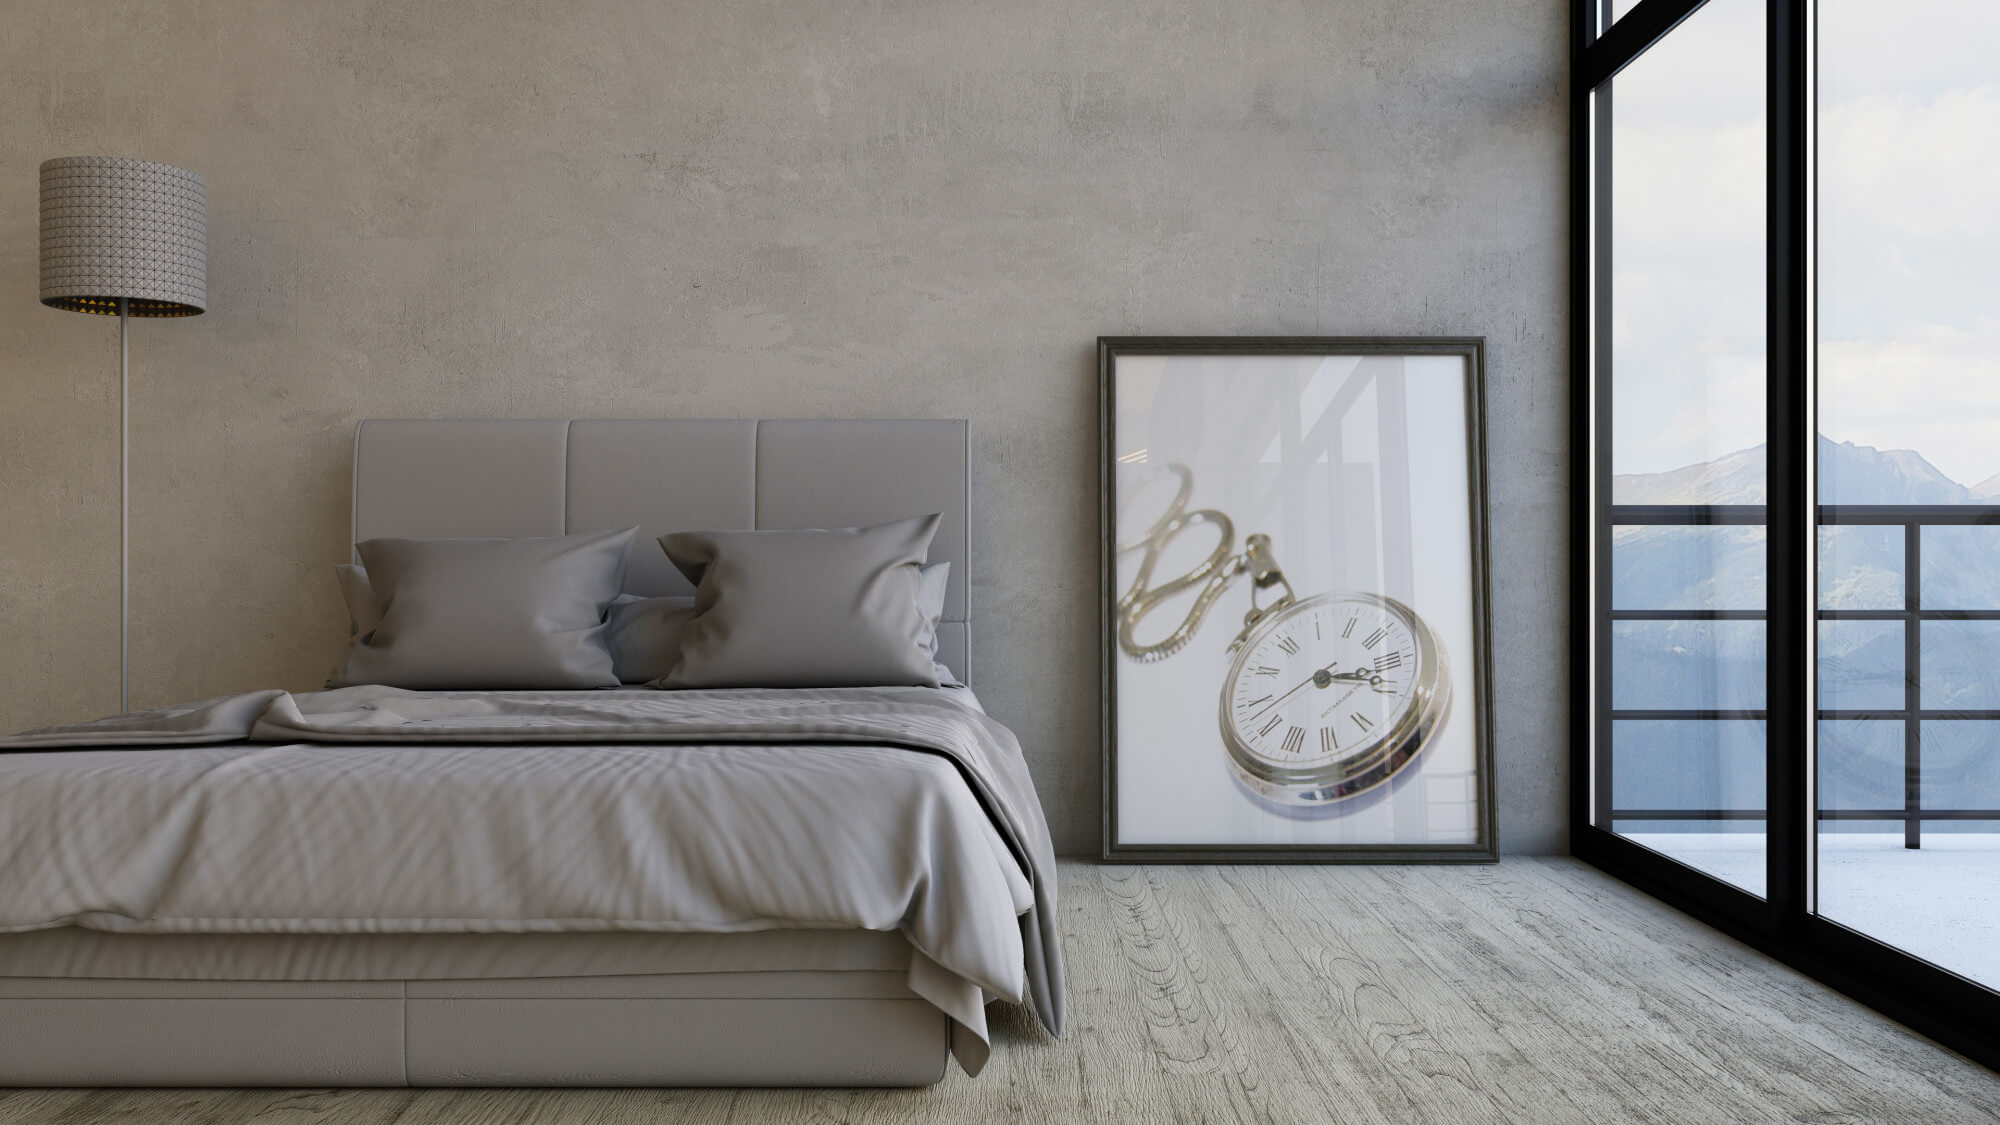 How to Do Easy Room Makeovers to Give Your Home an Elegant Look?